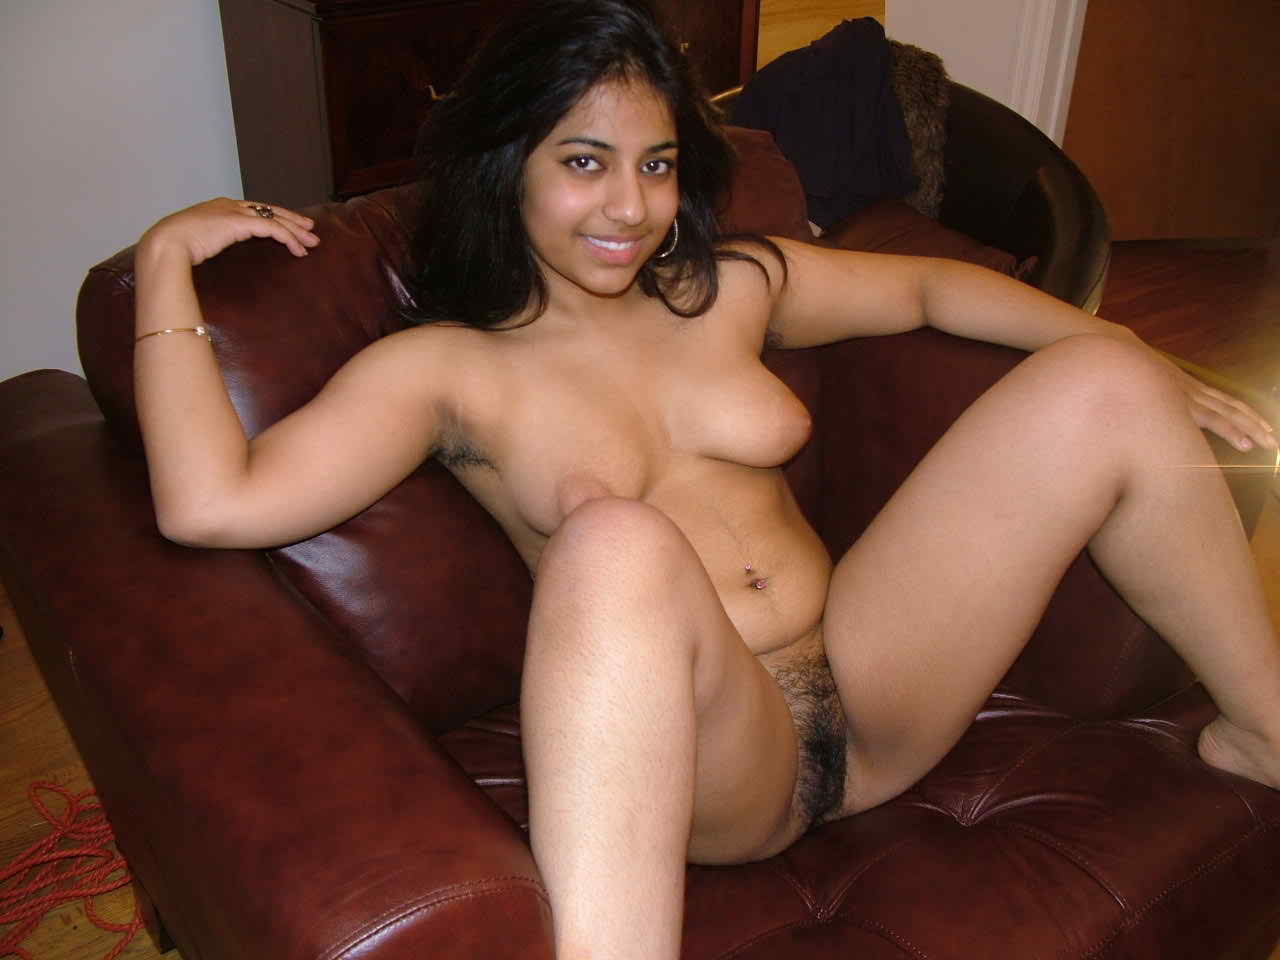 Hot indian city girls hd pics nude  erotic scenes